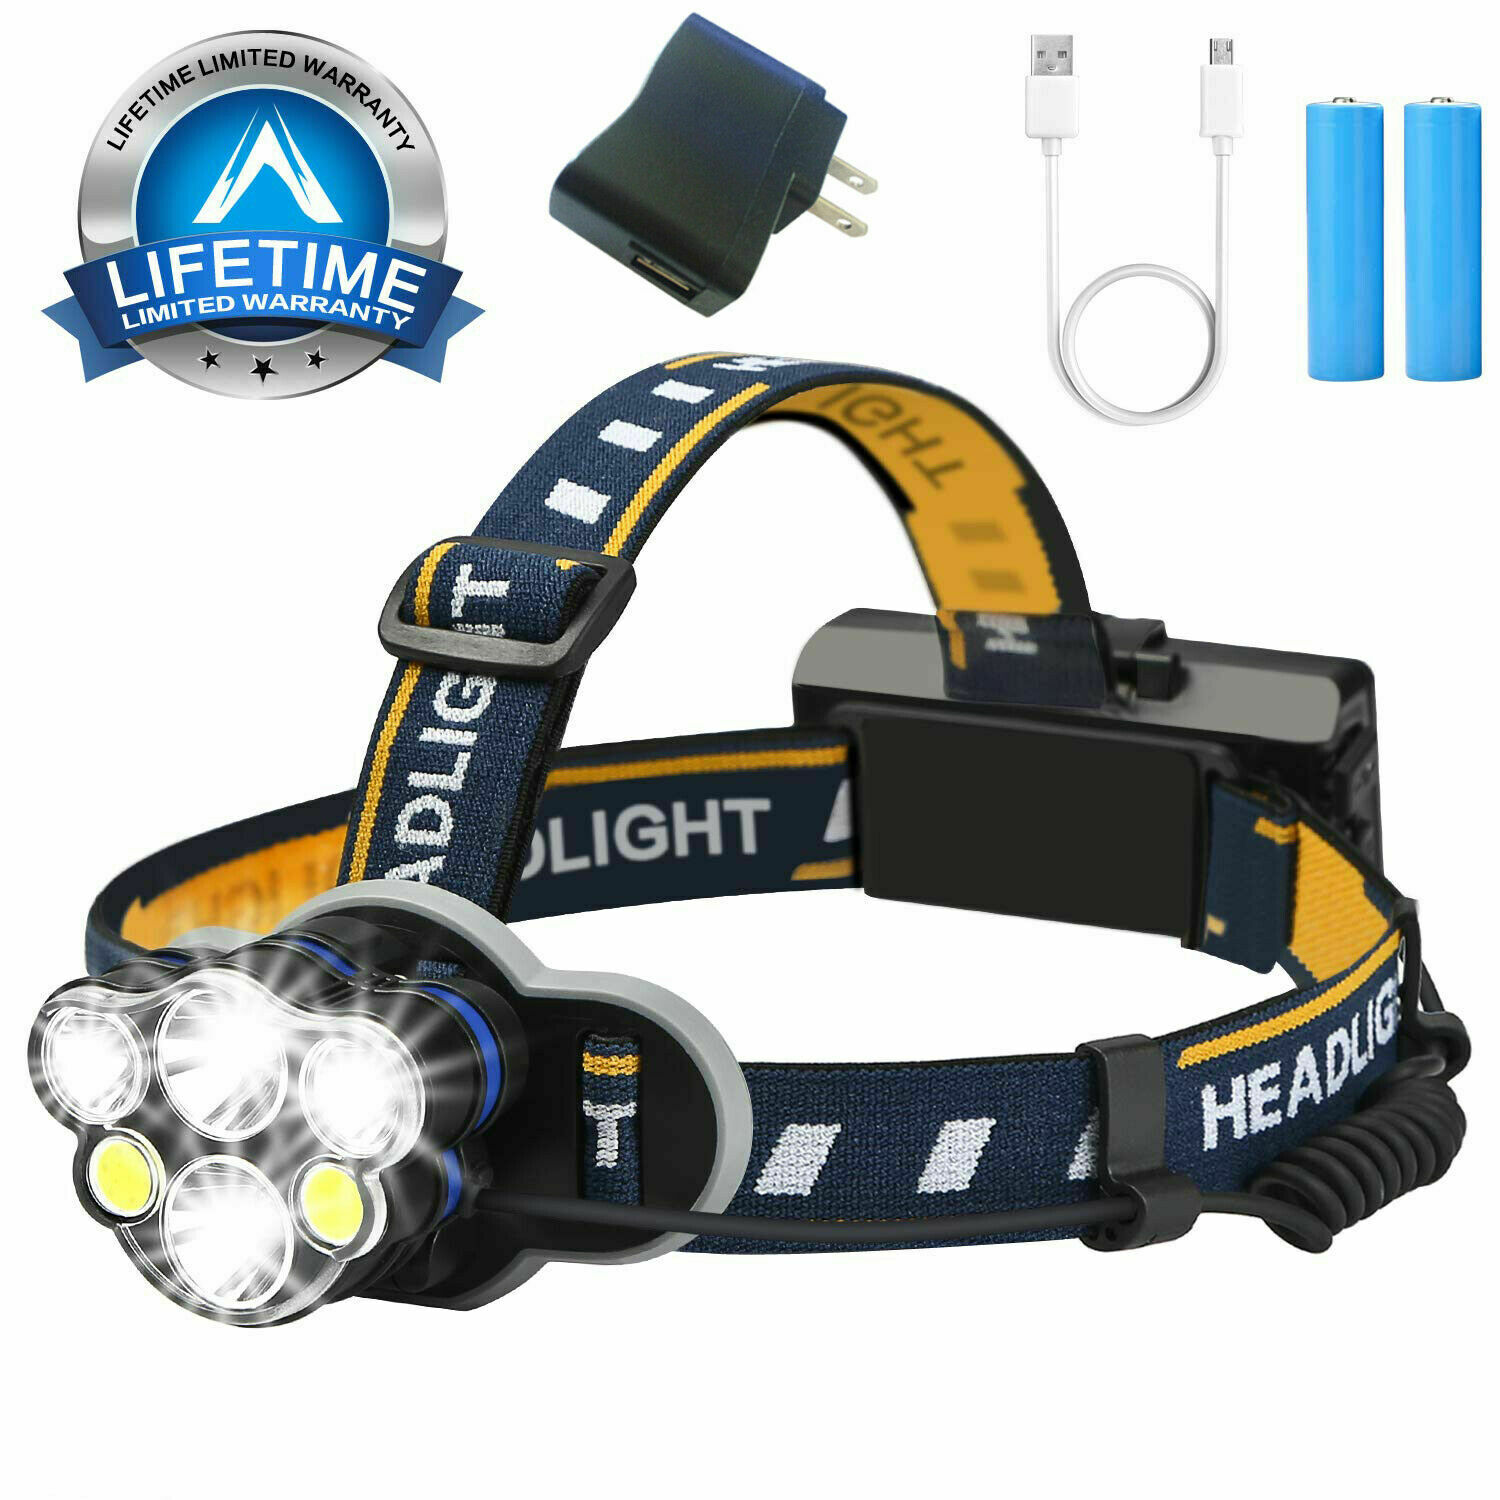 Super Bright 100000LM CREE XM-L T6 LED Headlamp Headlight Flashlight Head Torch Camping & Hiking